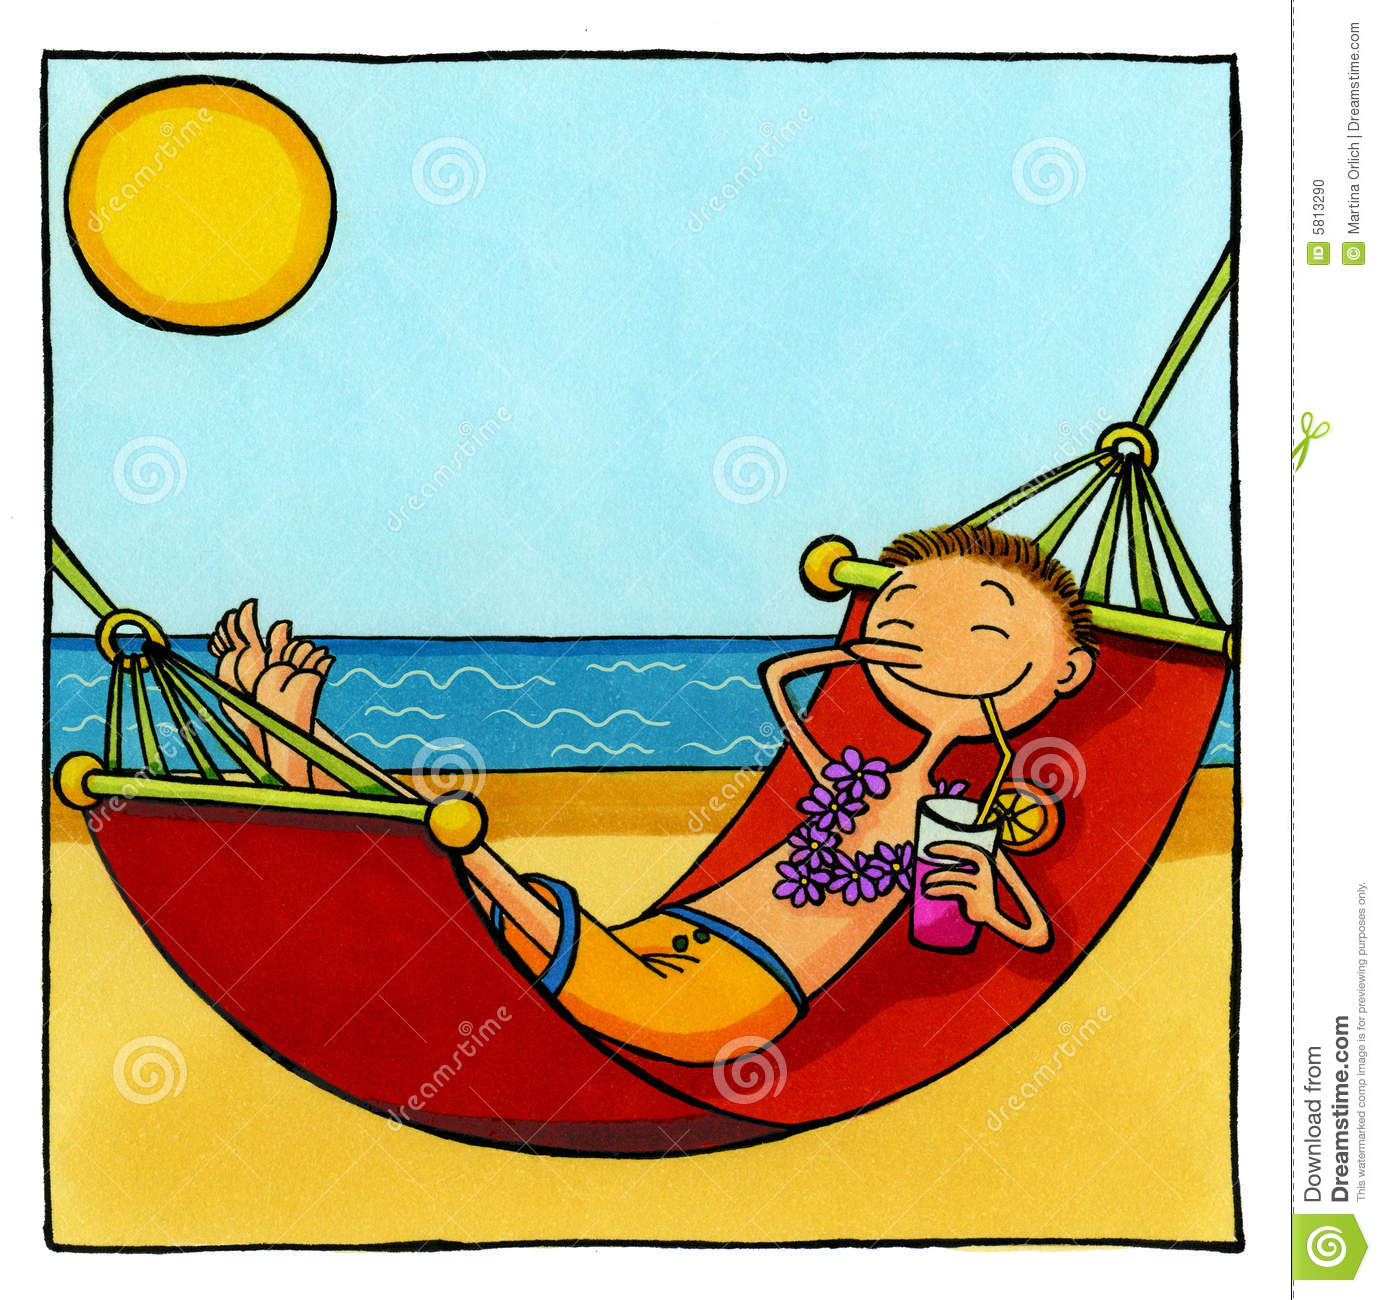 Lady In Hammock Clipart - Clipart Kid